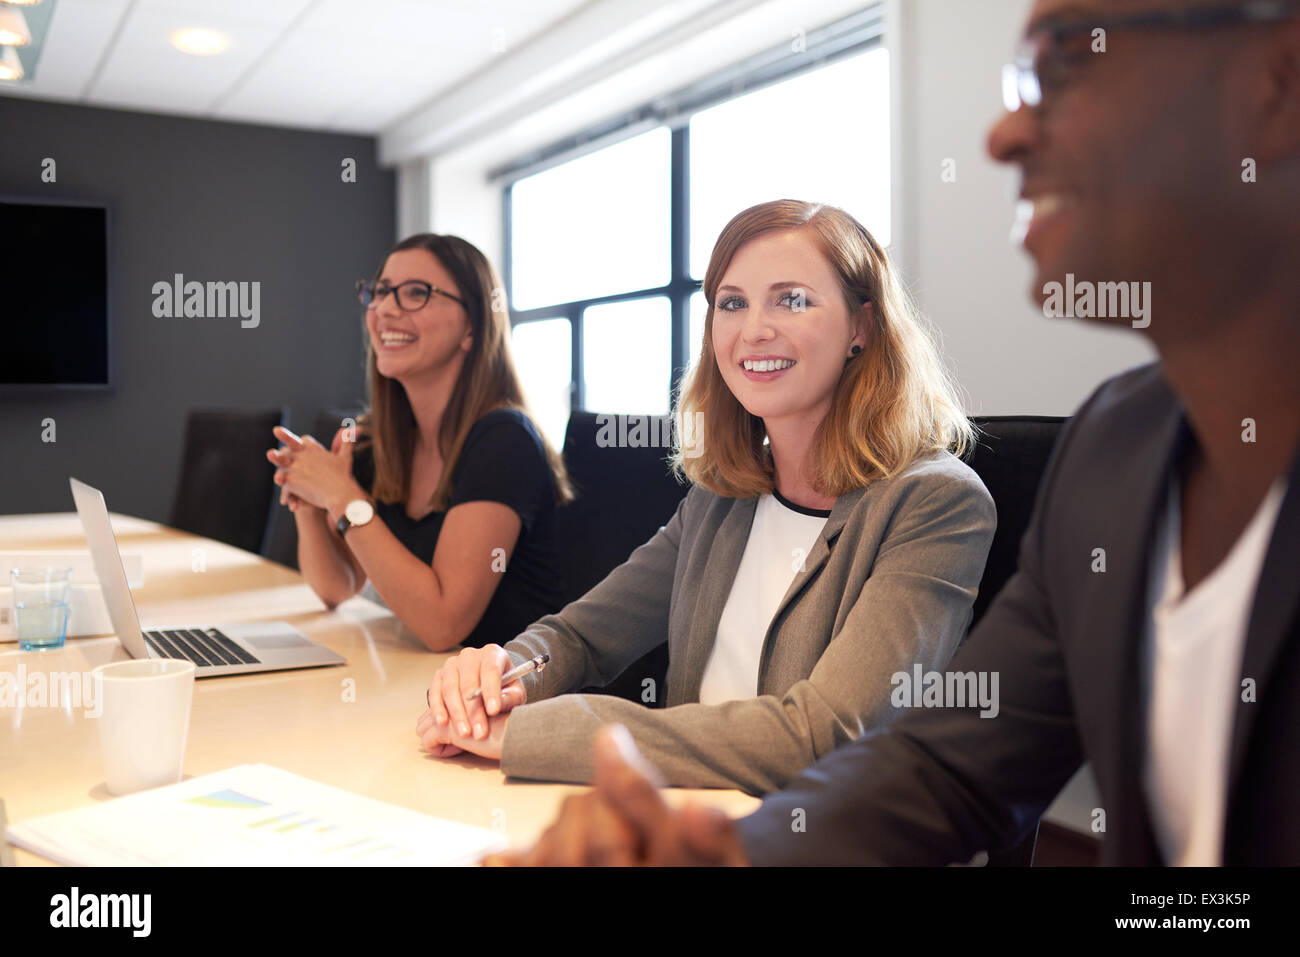 Young white female executive smiling at camera with hands clasped during meeting in conference room - Stock Image